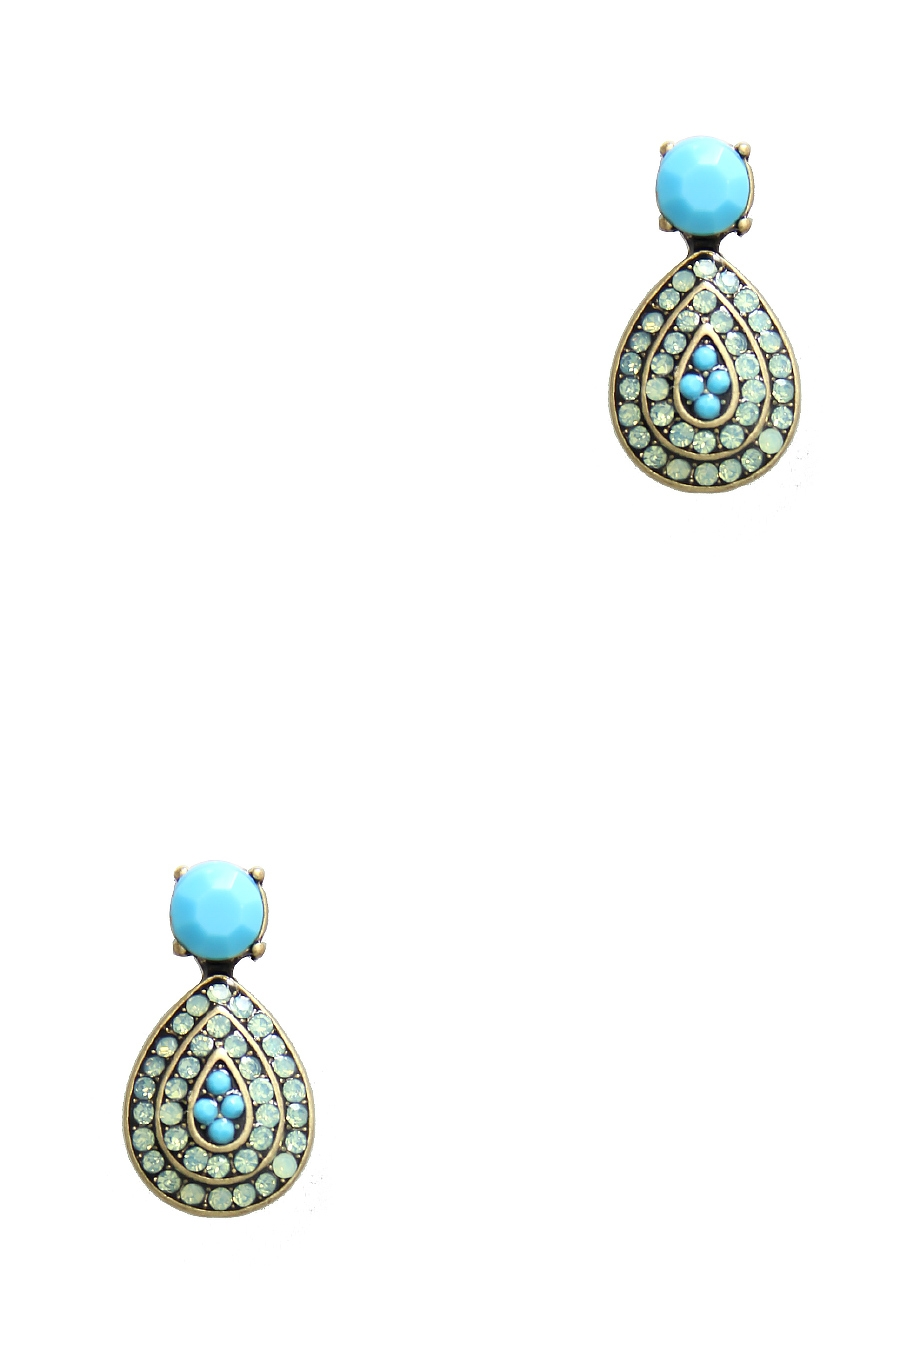 CRYSTAL TEARDROP EARRING - orangeshine.com